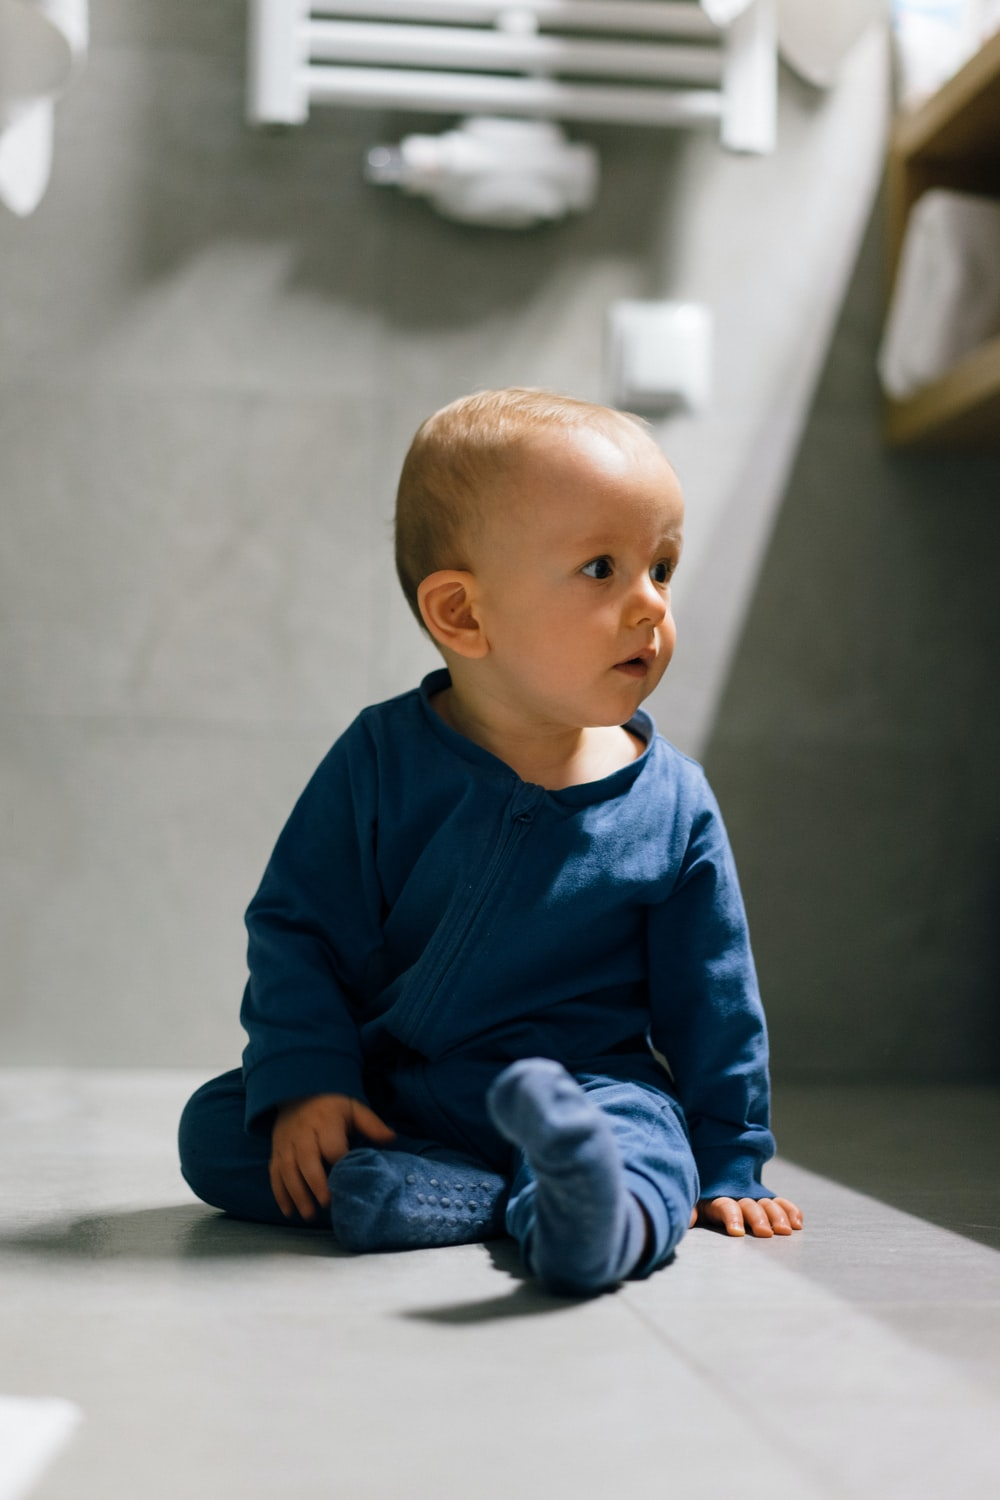 baby in blue long sleeve shirt and blue denim jeans sitting on floor